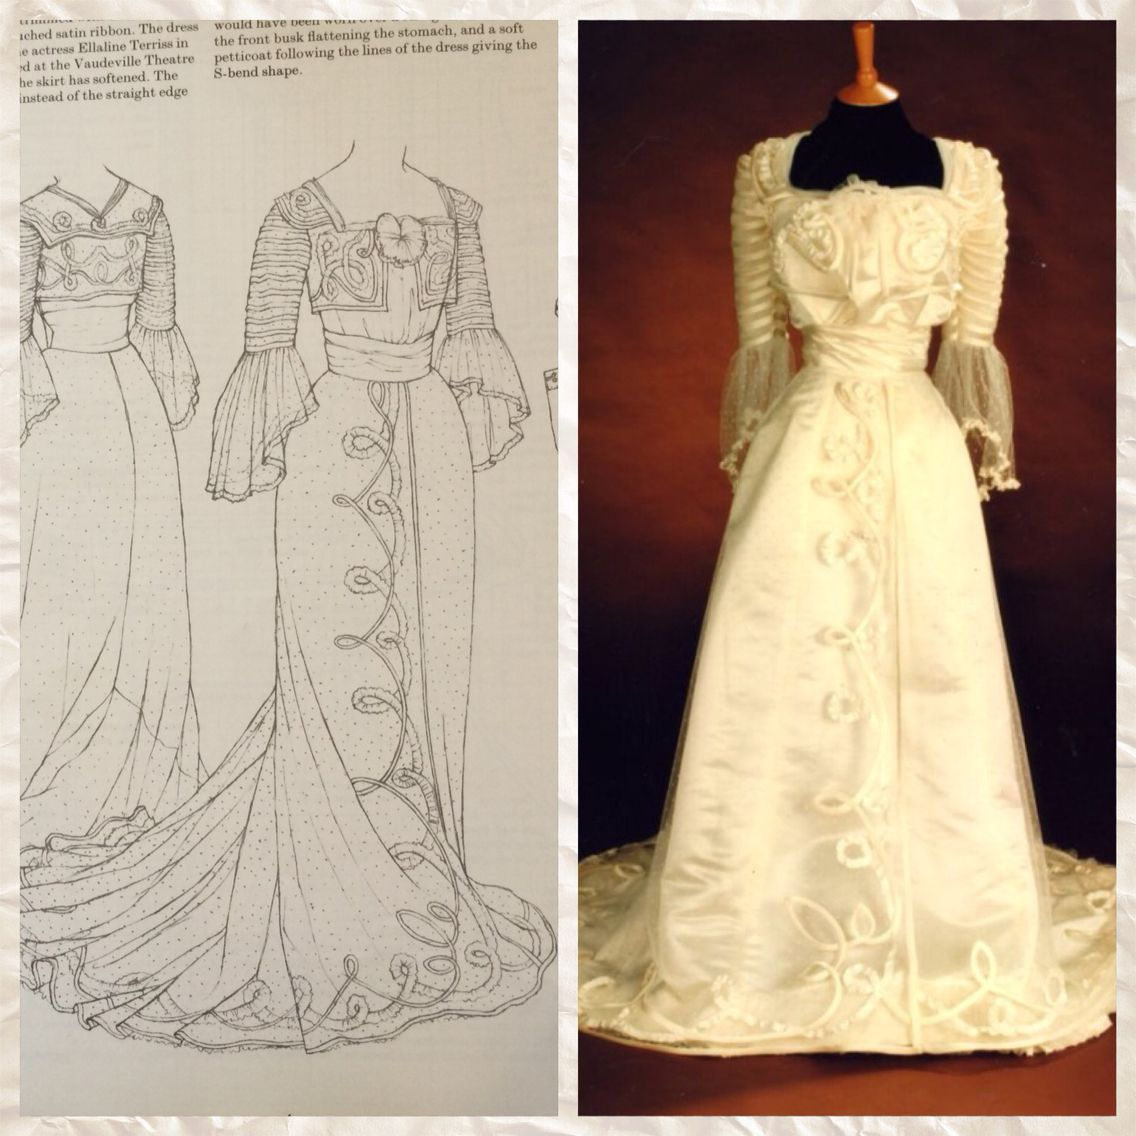 Vintage Wedding Dresses In London: 1901-02 Reception Gown In White Spotted Net Over Ivory